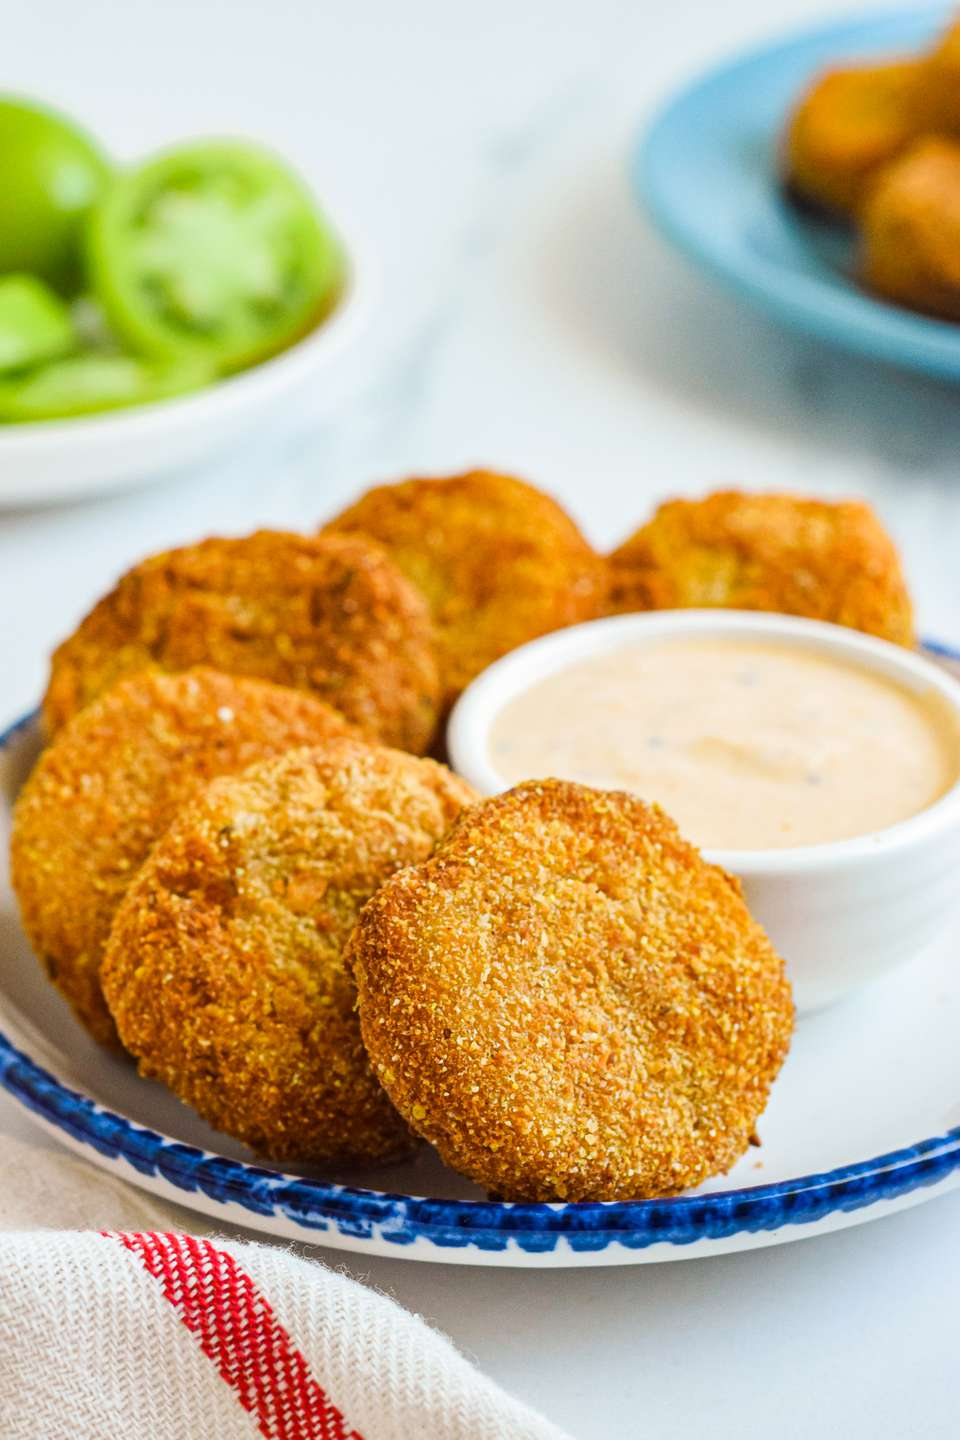 A plate of fried green tomatoes set next to a bowl of dip.